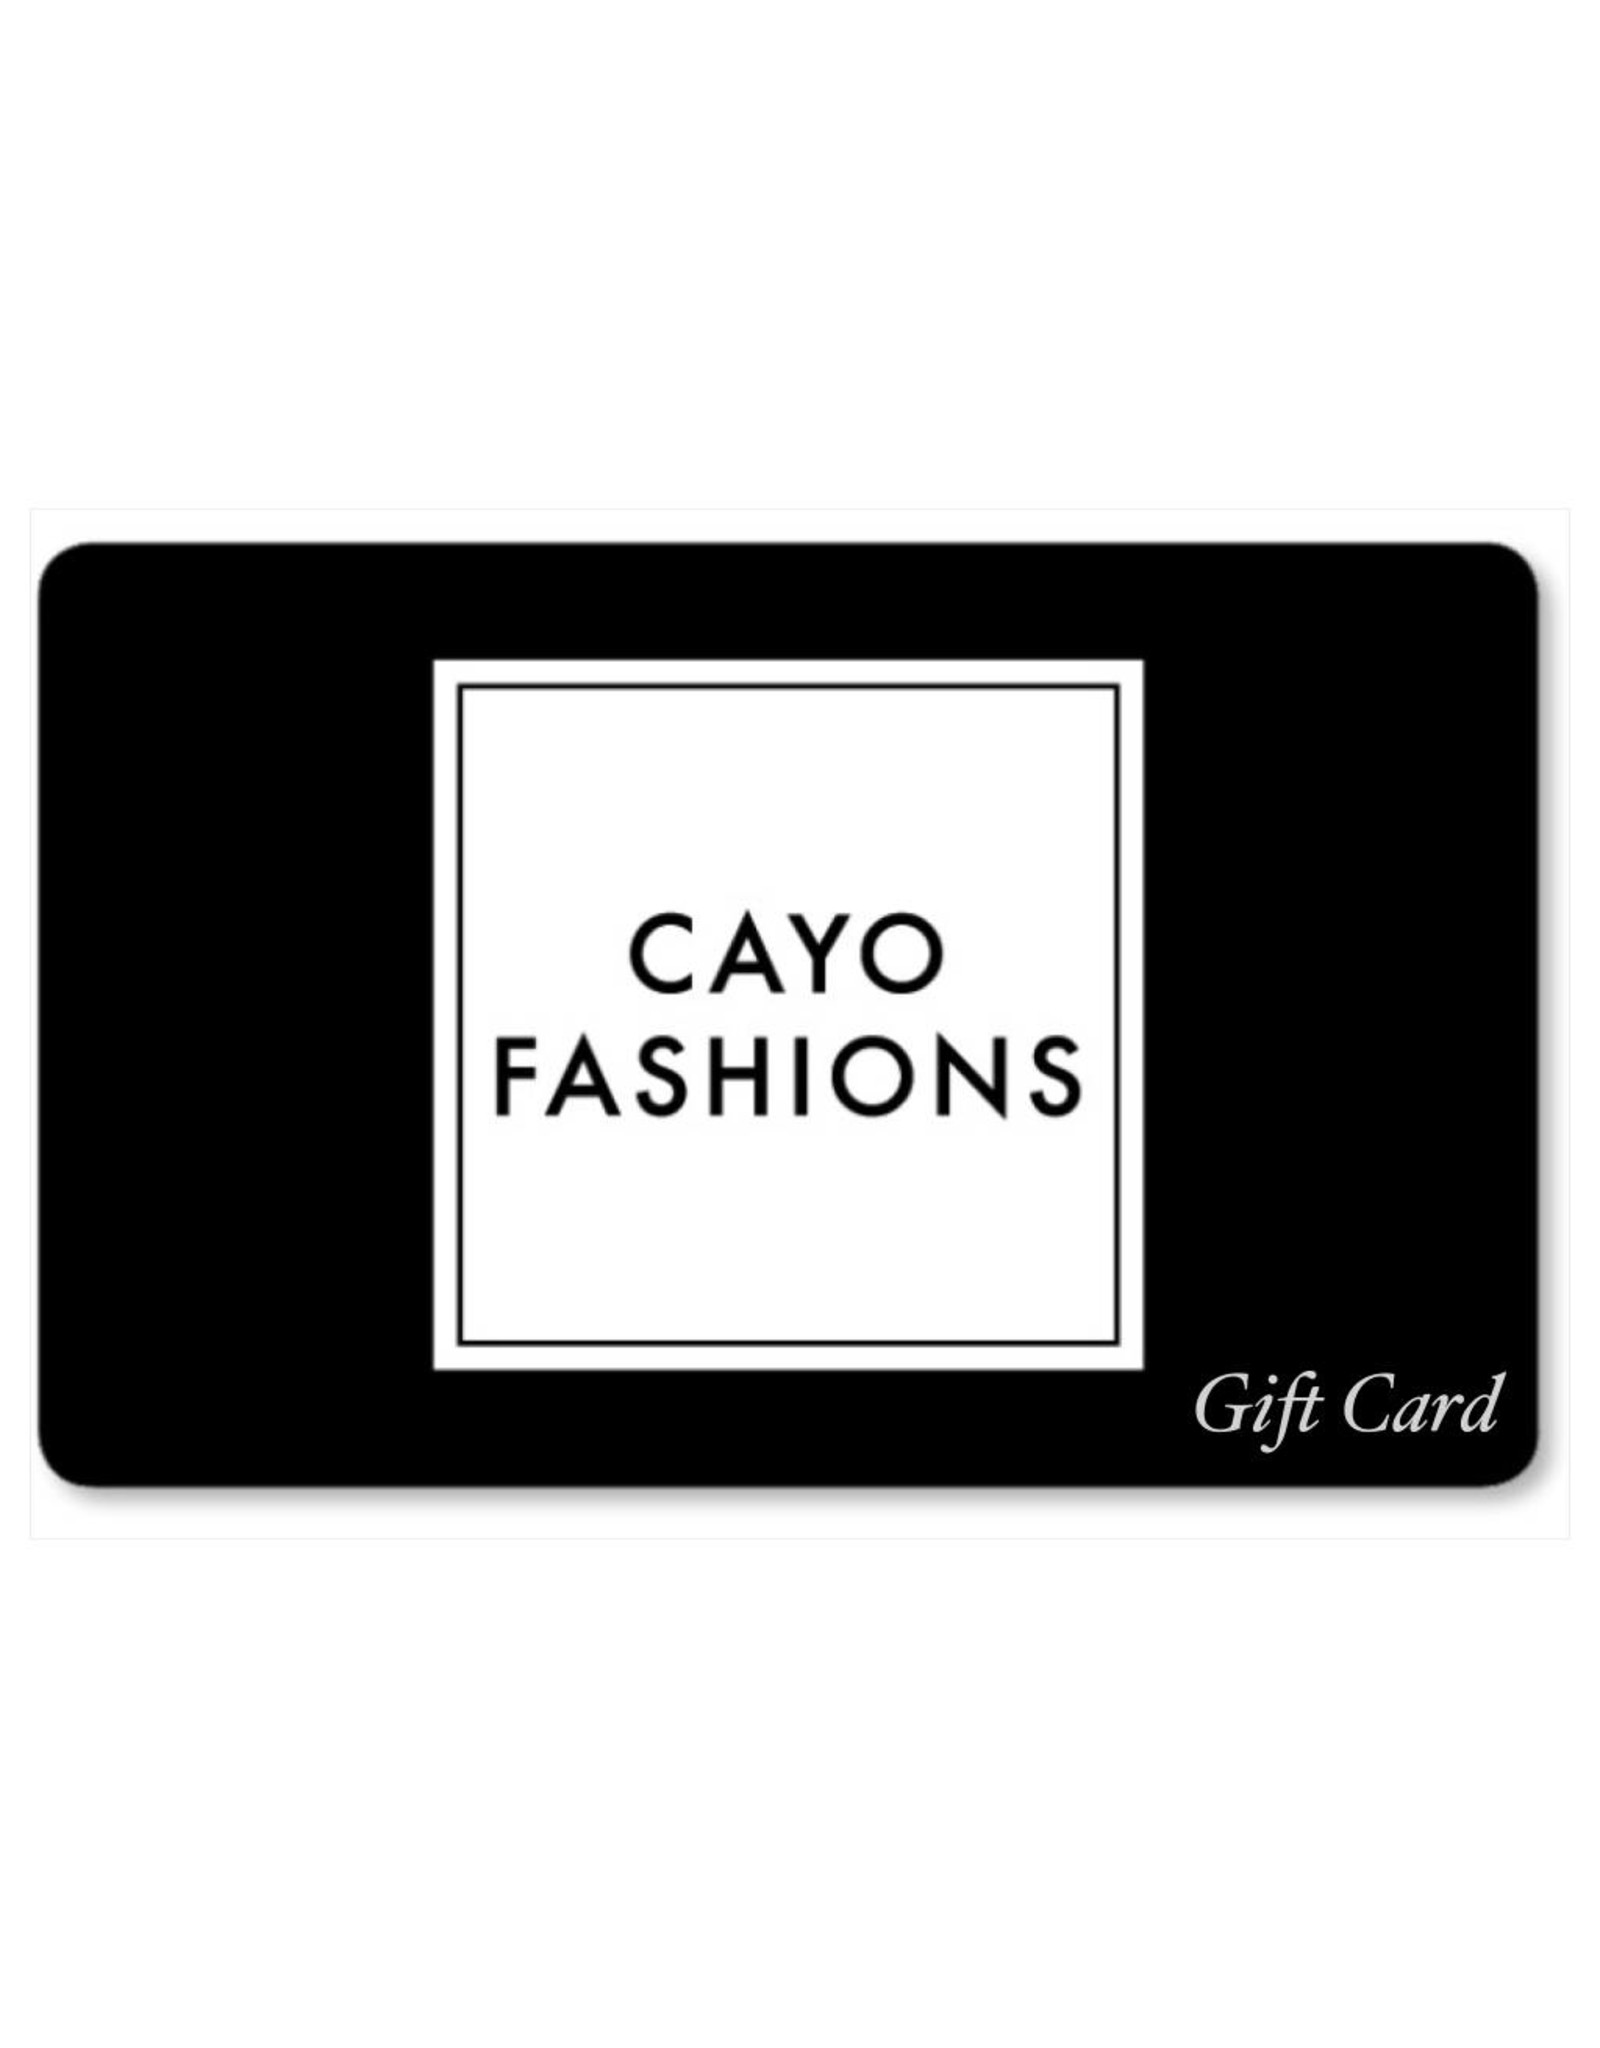 Gift Card from $25